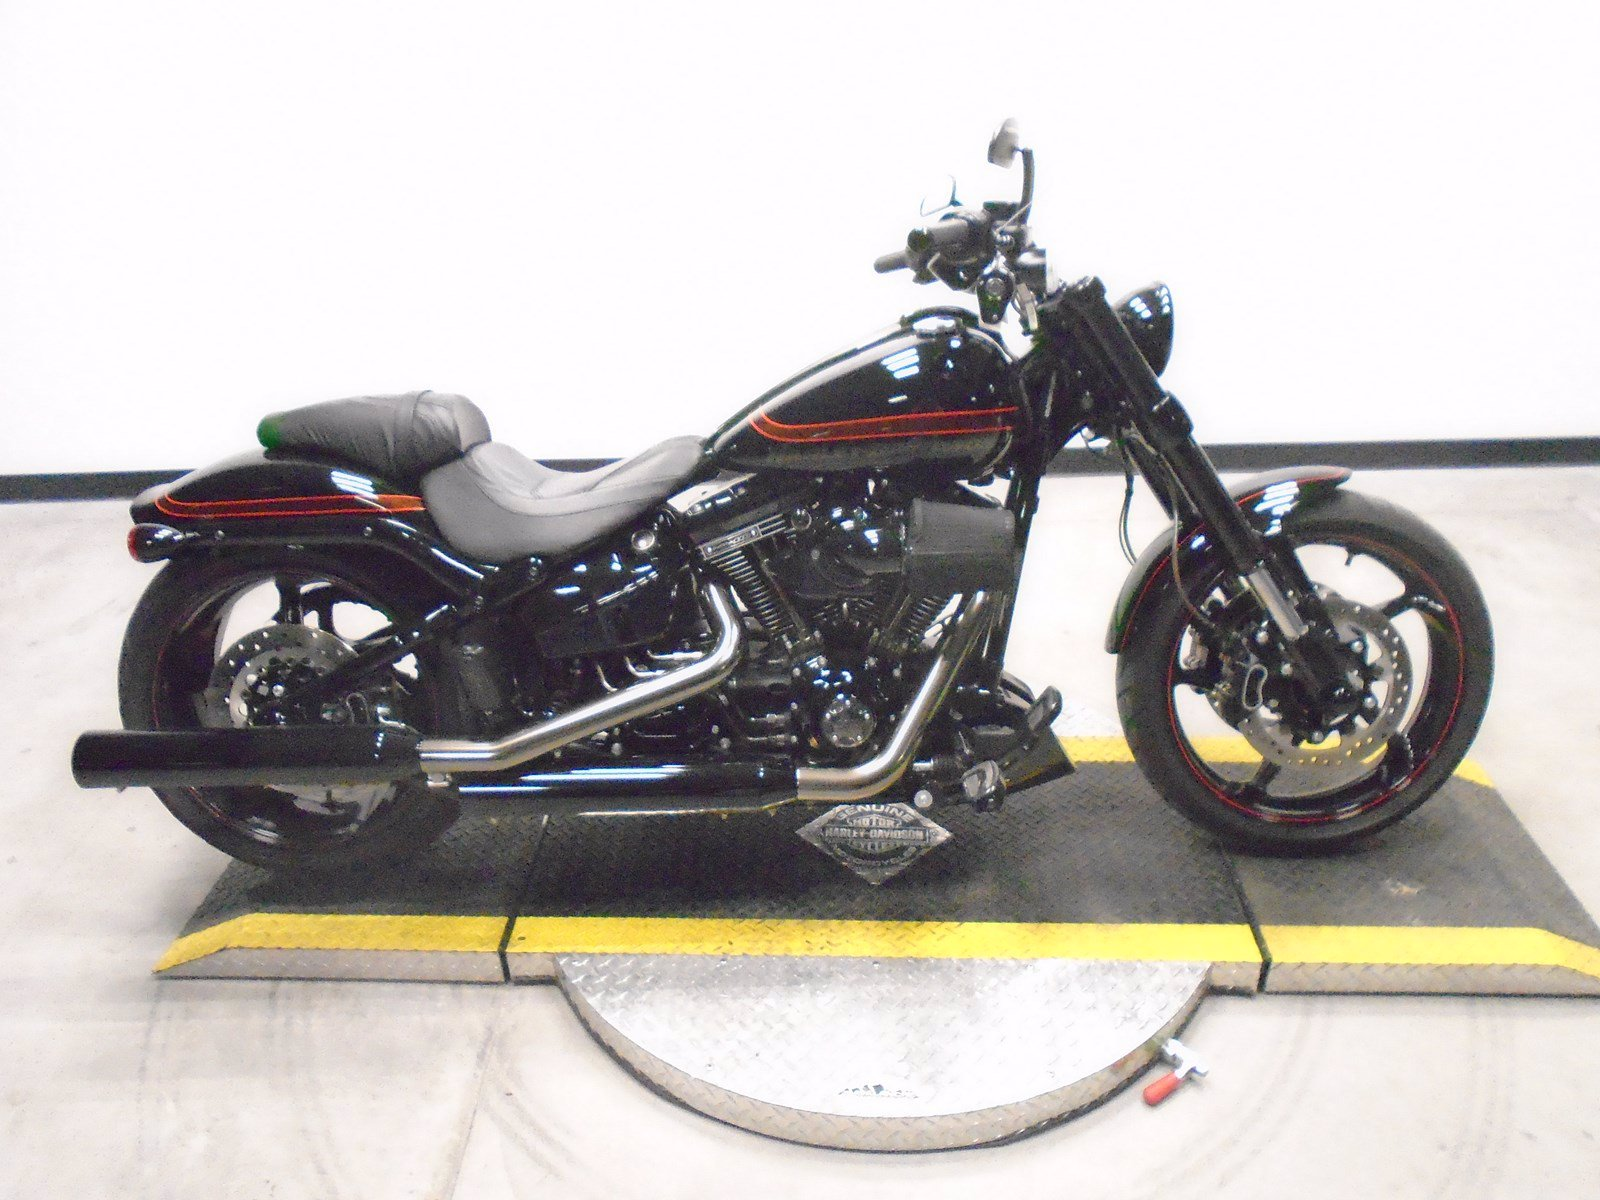 Pre-Owned 2017 Harley-Davidson Softail Pro Street Breakout CVO FXSE CVO/Softail